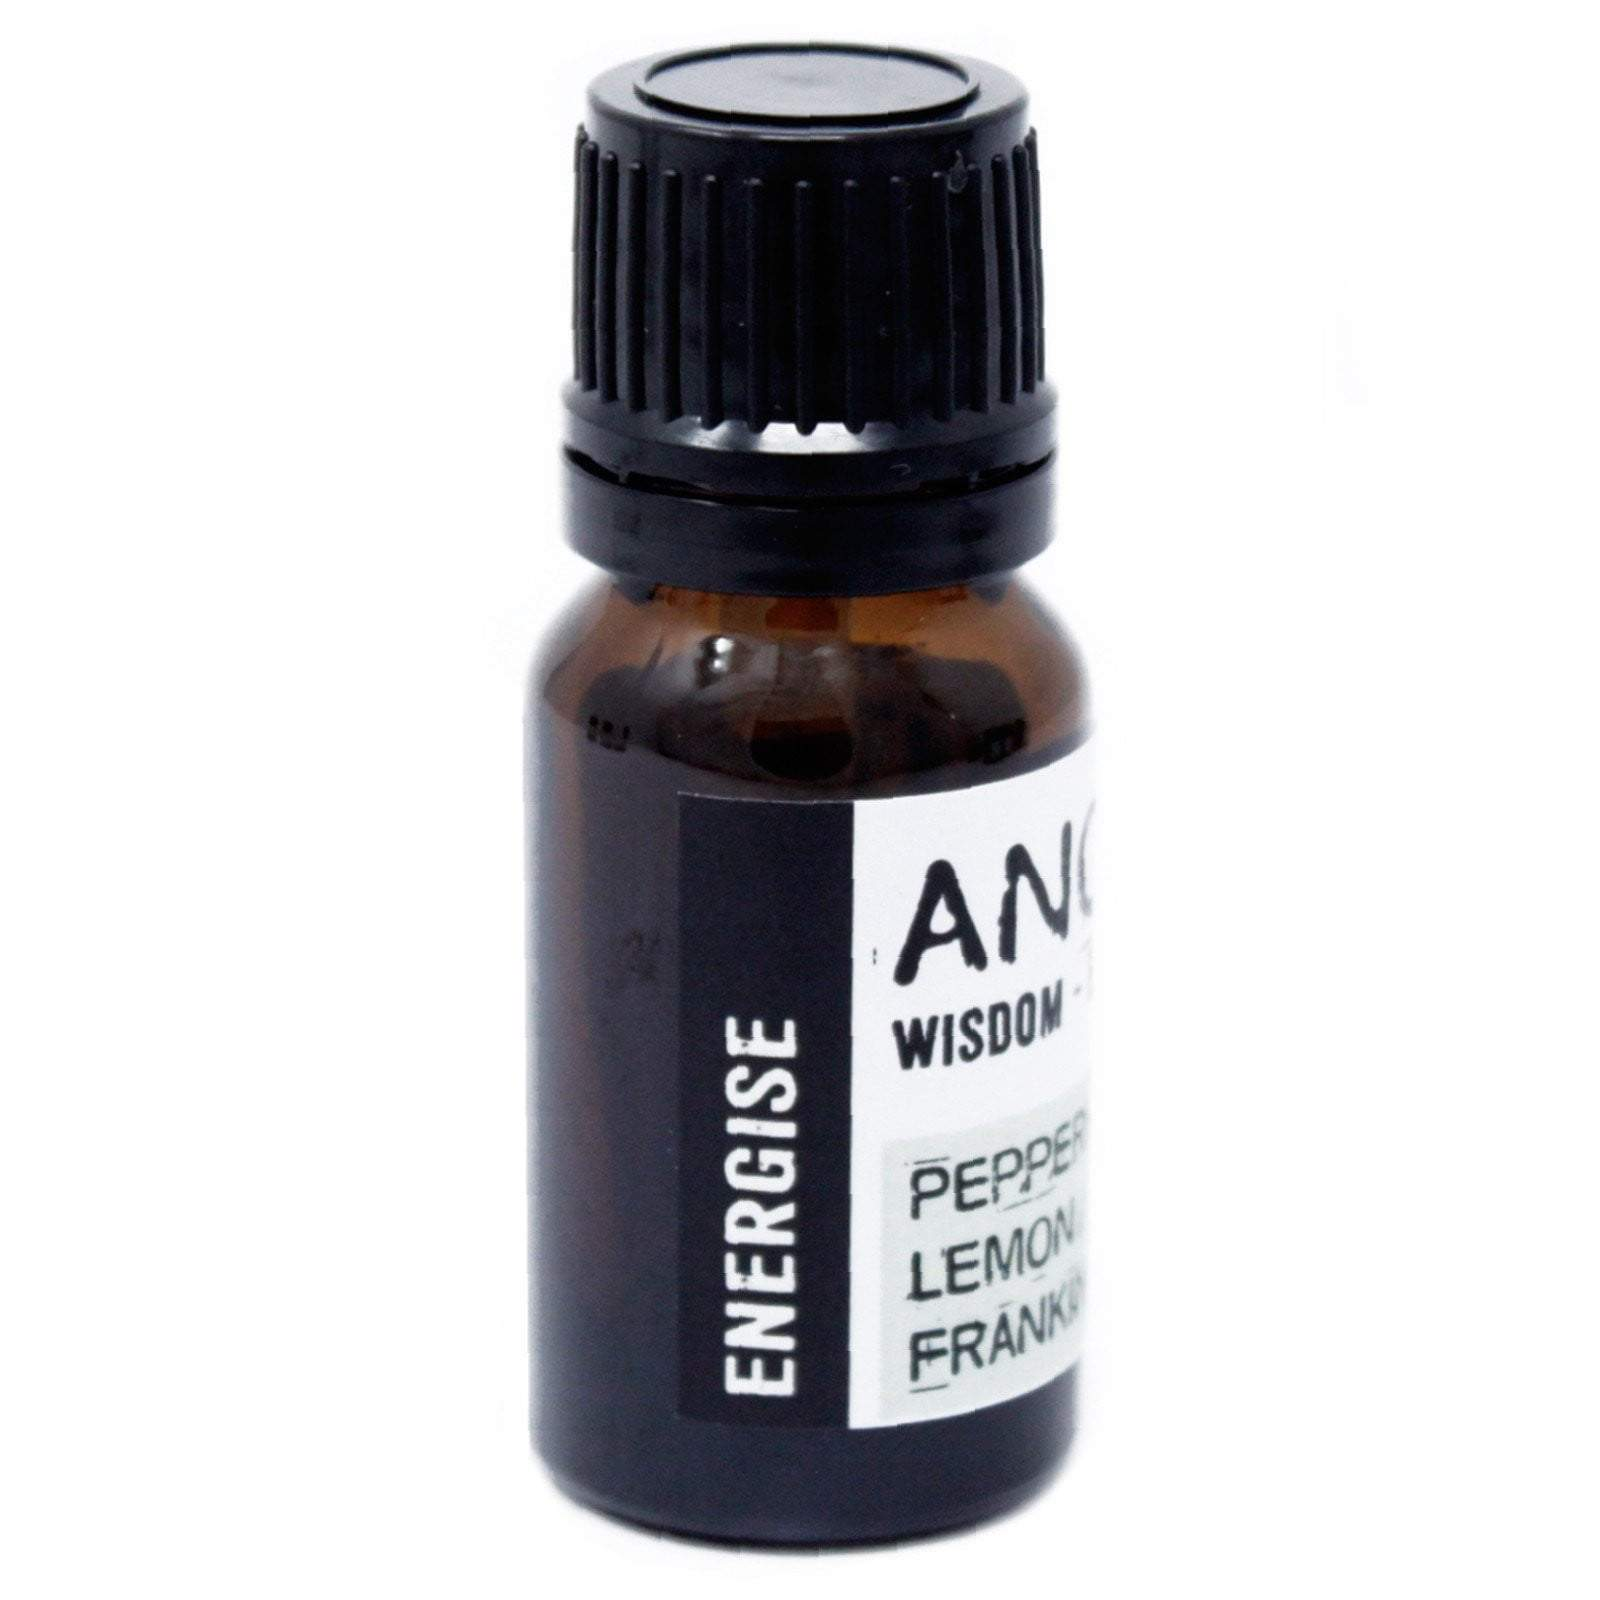 Energising Essential Oil Blend - 10ml - I Spy A Simple Life